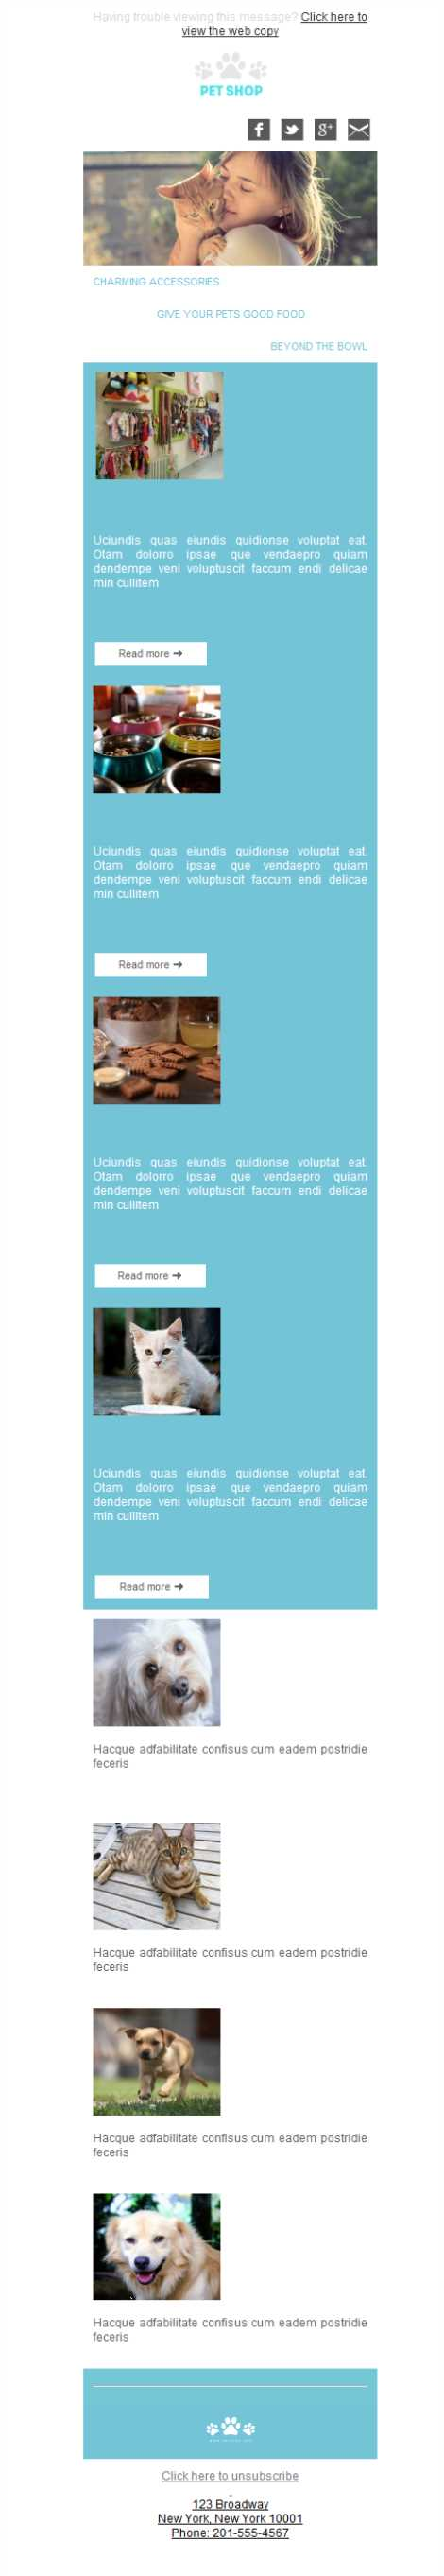 Templates Emailing Pet Shop Sarbacane